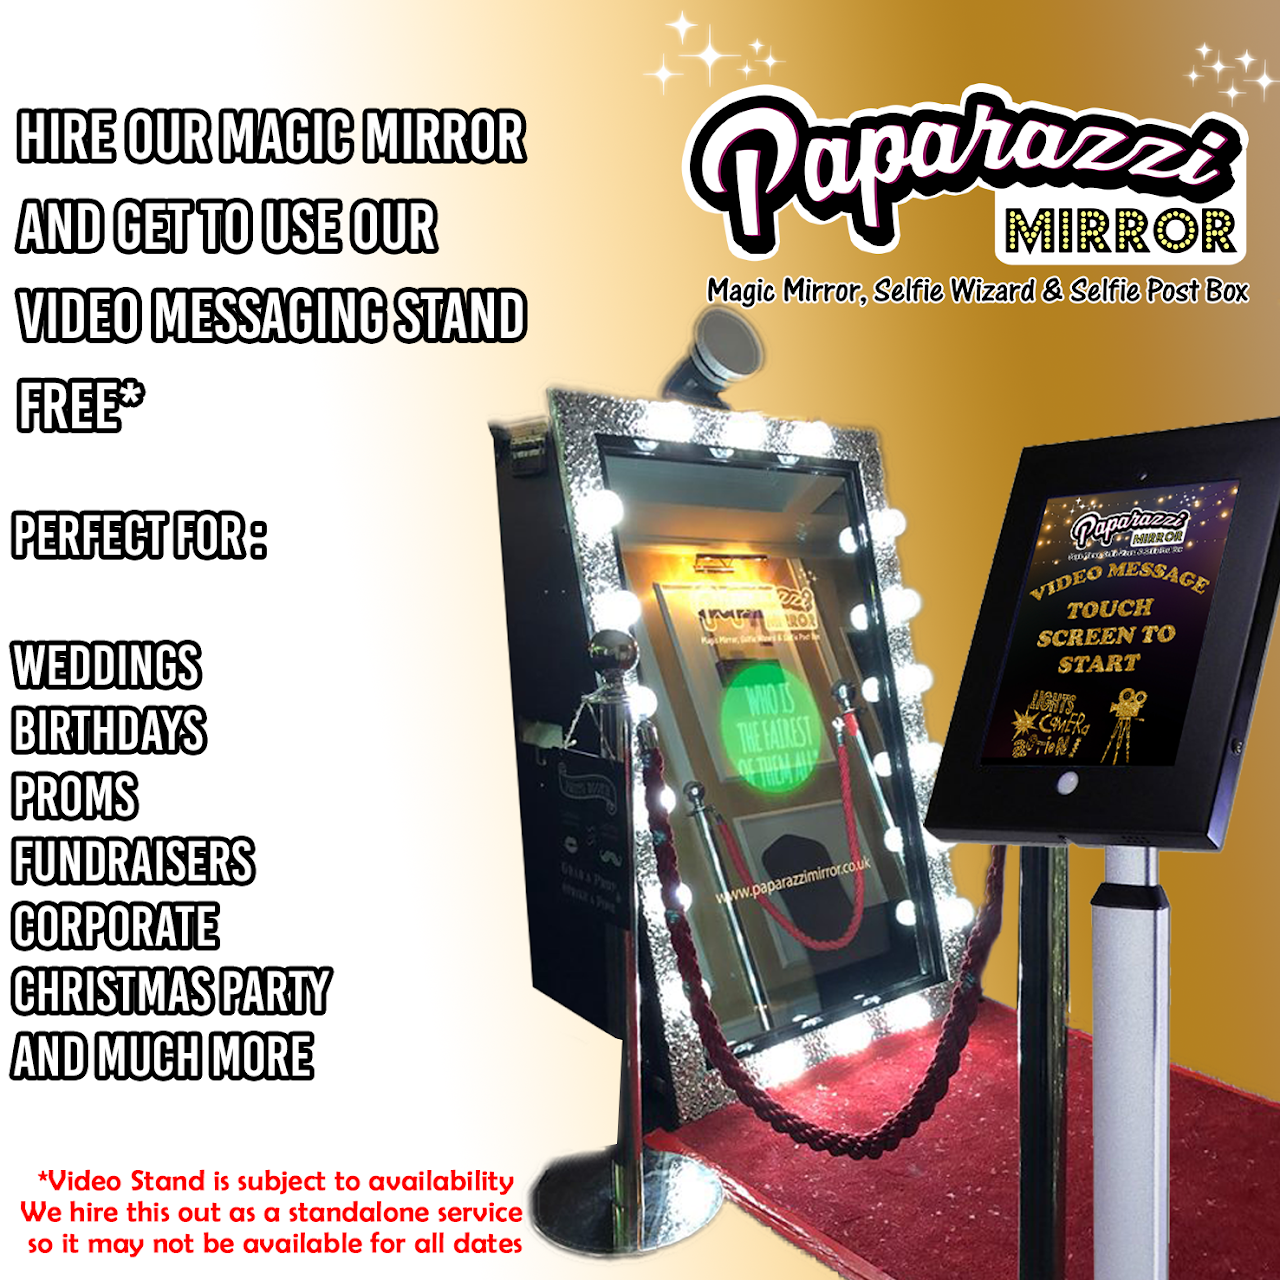 Paparazzi Mirror - Magic Mirror Hire - Party Equipment Rental Service